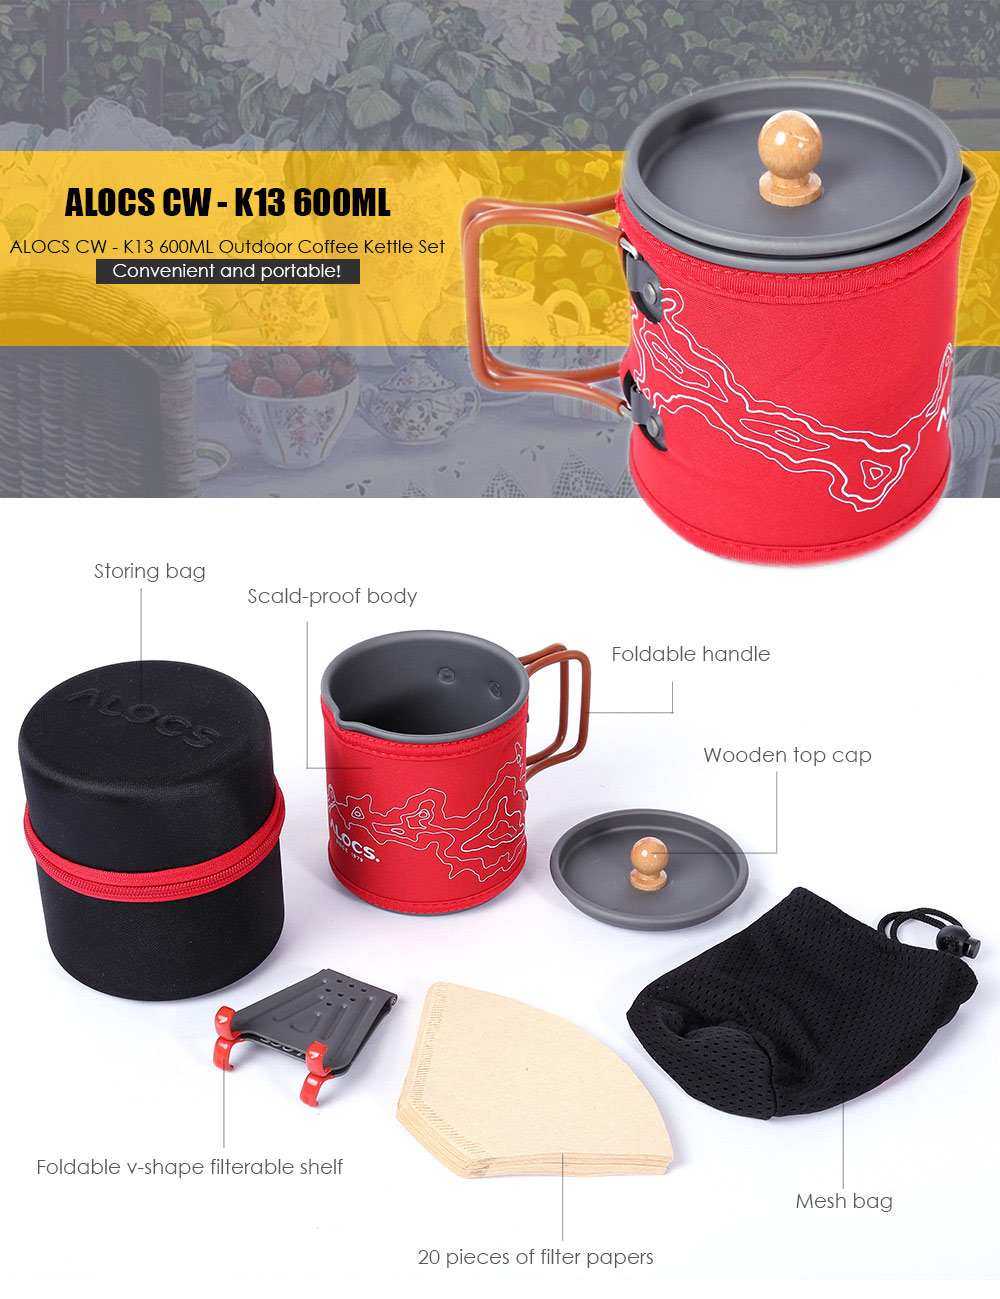 ALOCS CW - K13 600ML Outdoor Car Travel Camping Portable Aluminum Oxide Coffee Pot Kettle Cup Set